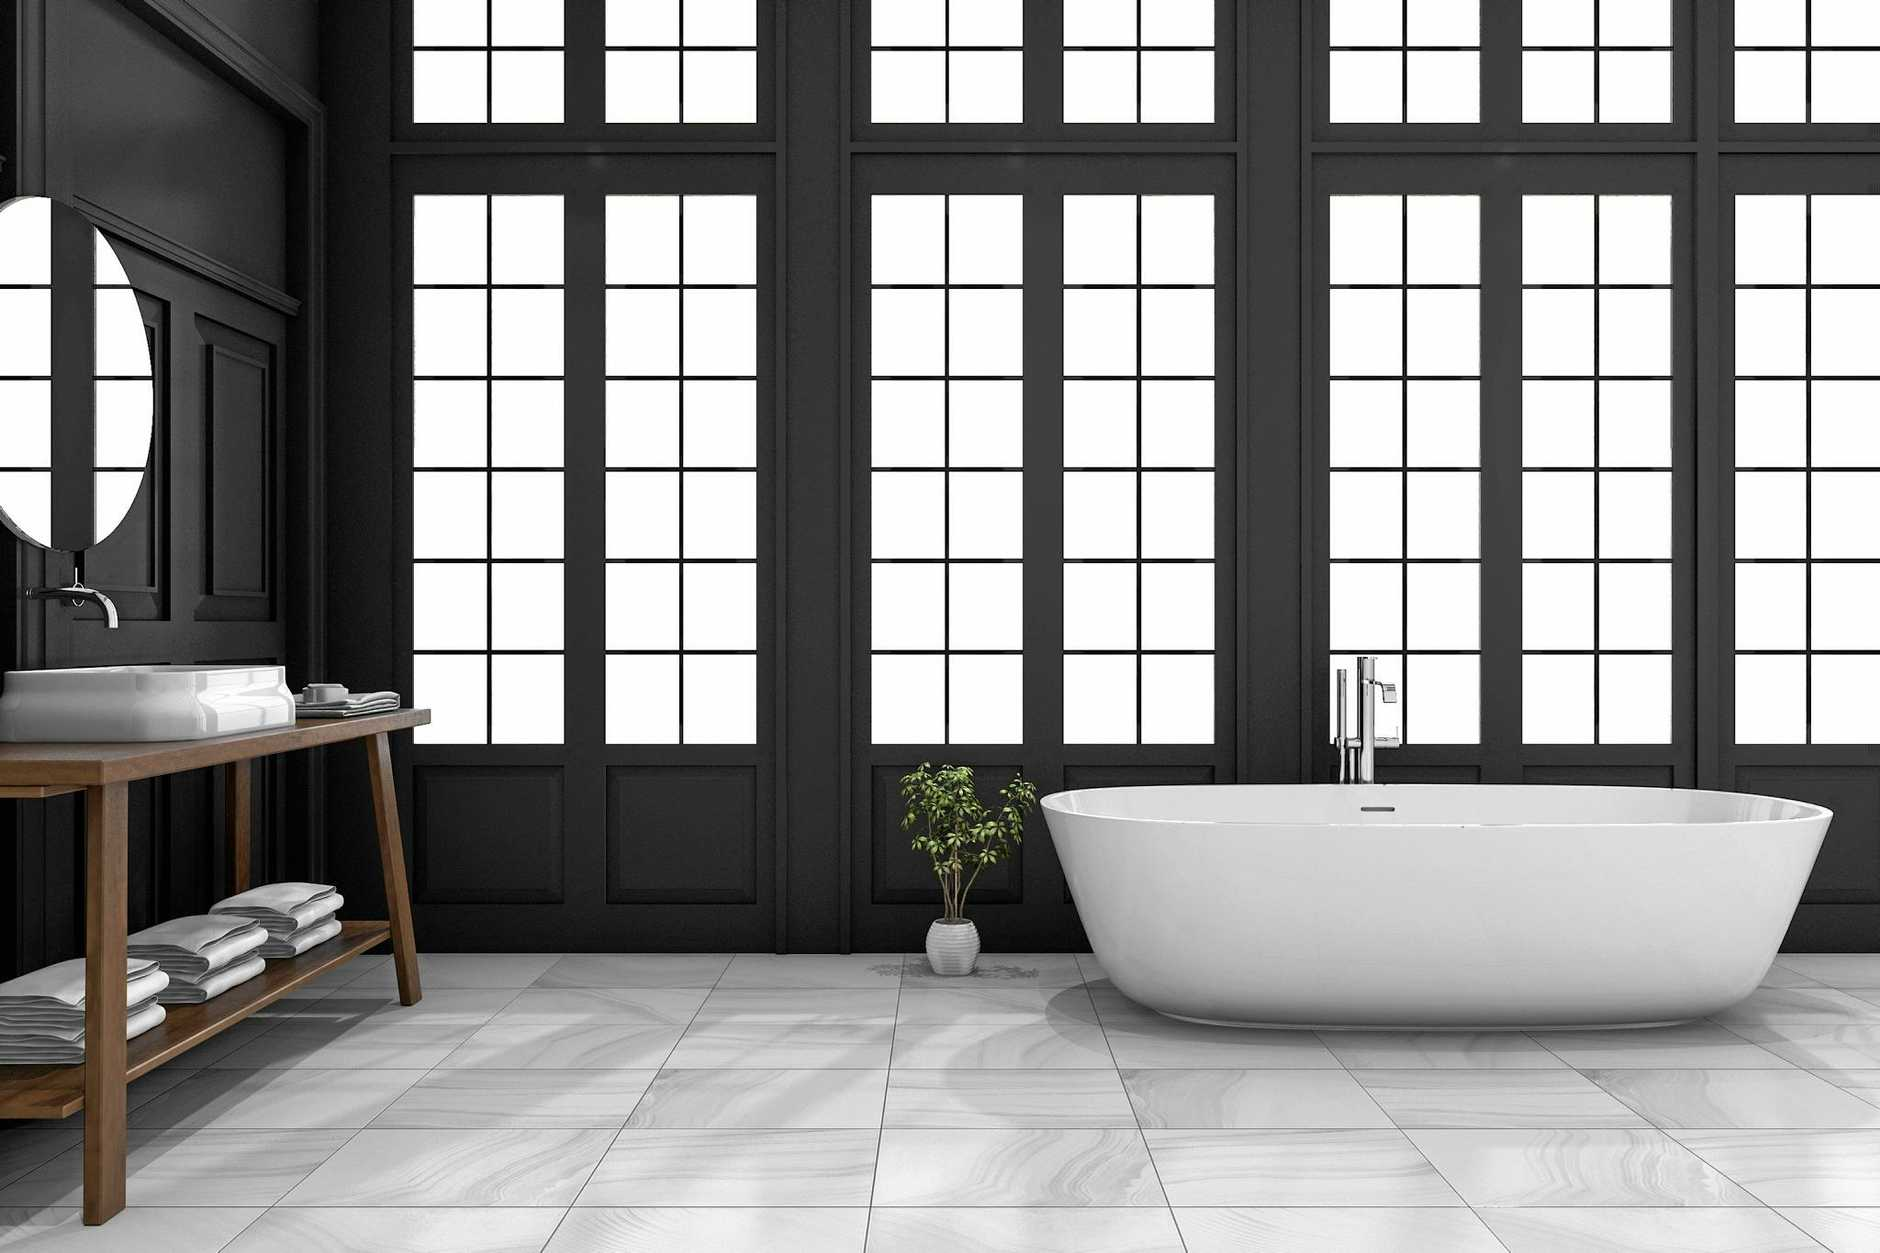 Baths remain a sought-after luxury item in many homes.